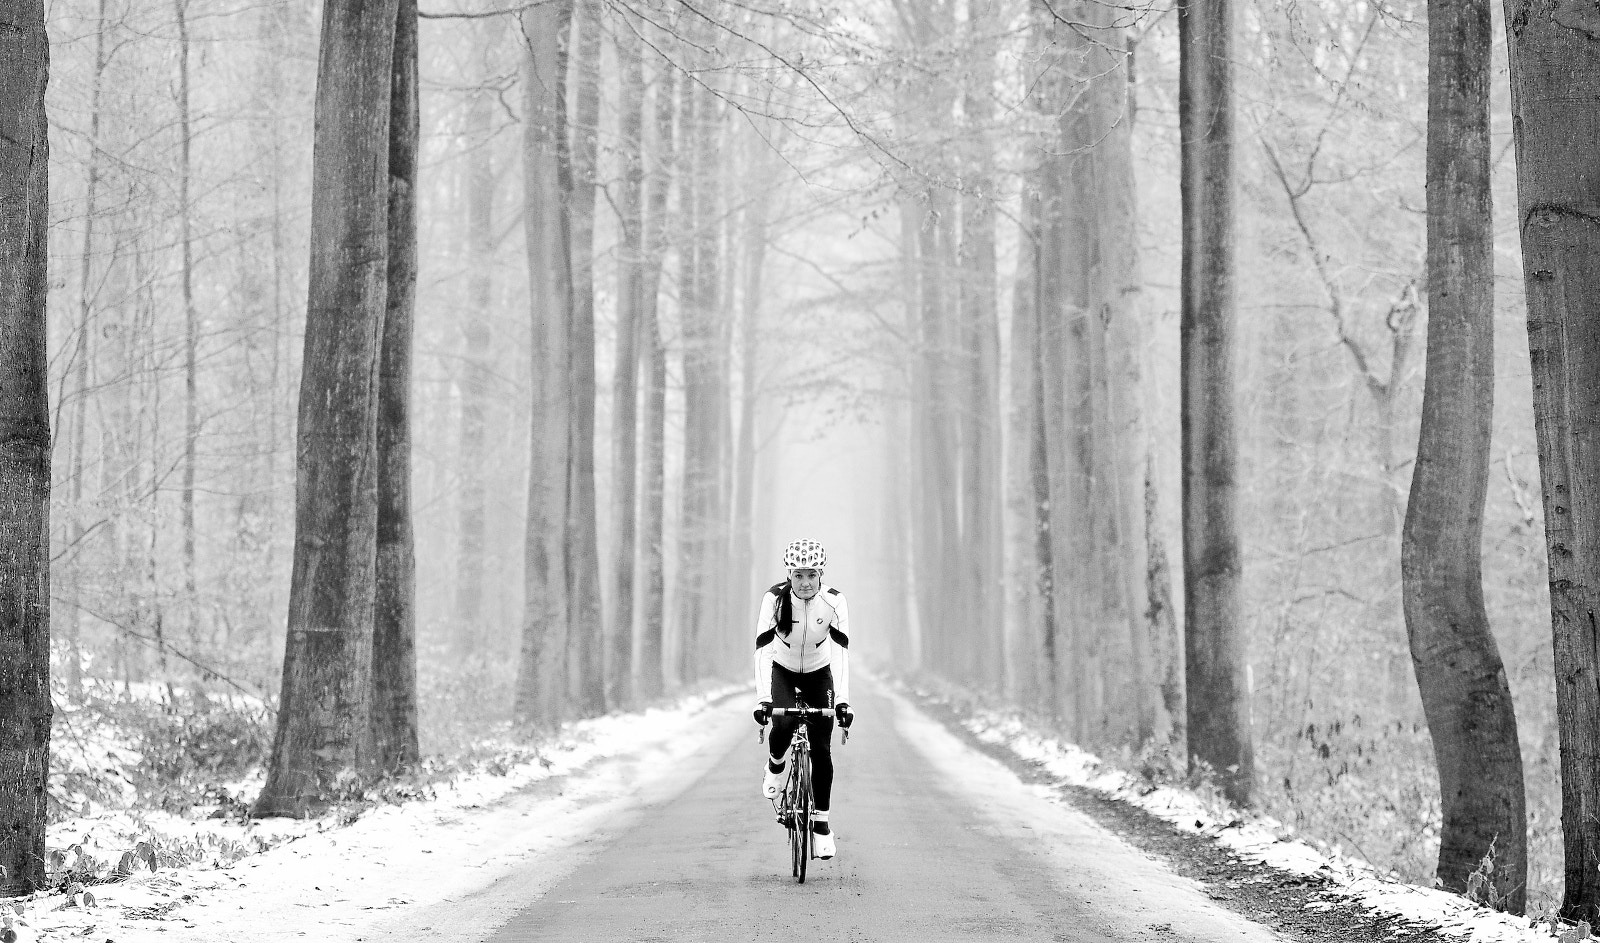 Top Winter Riding Tips from racing in sub-zero conditions